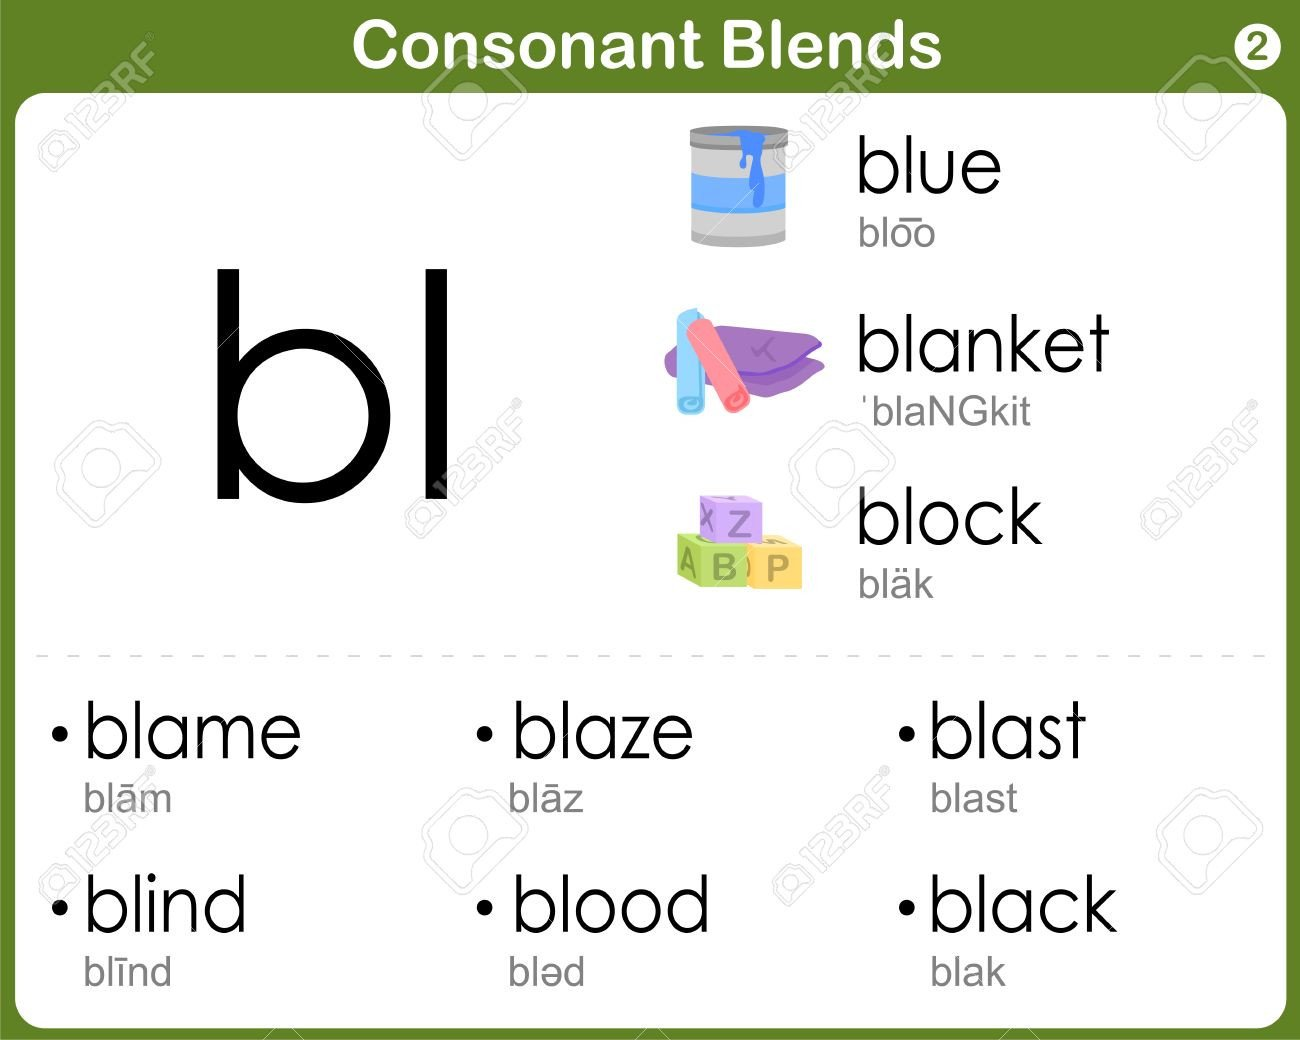 Consonant Blends Worksheets for Kindergarten Consonant Blends Worksheet for Kids